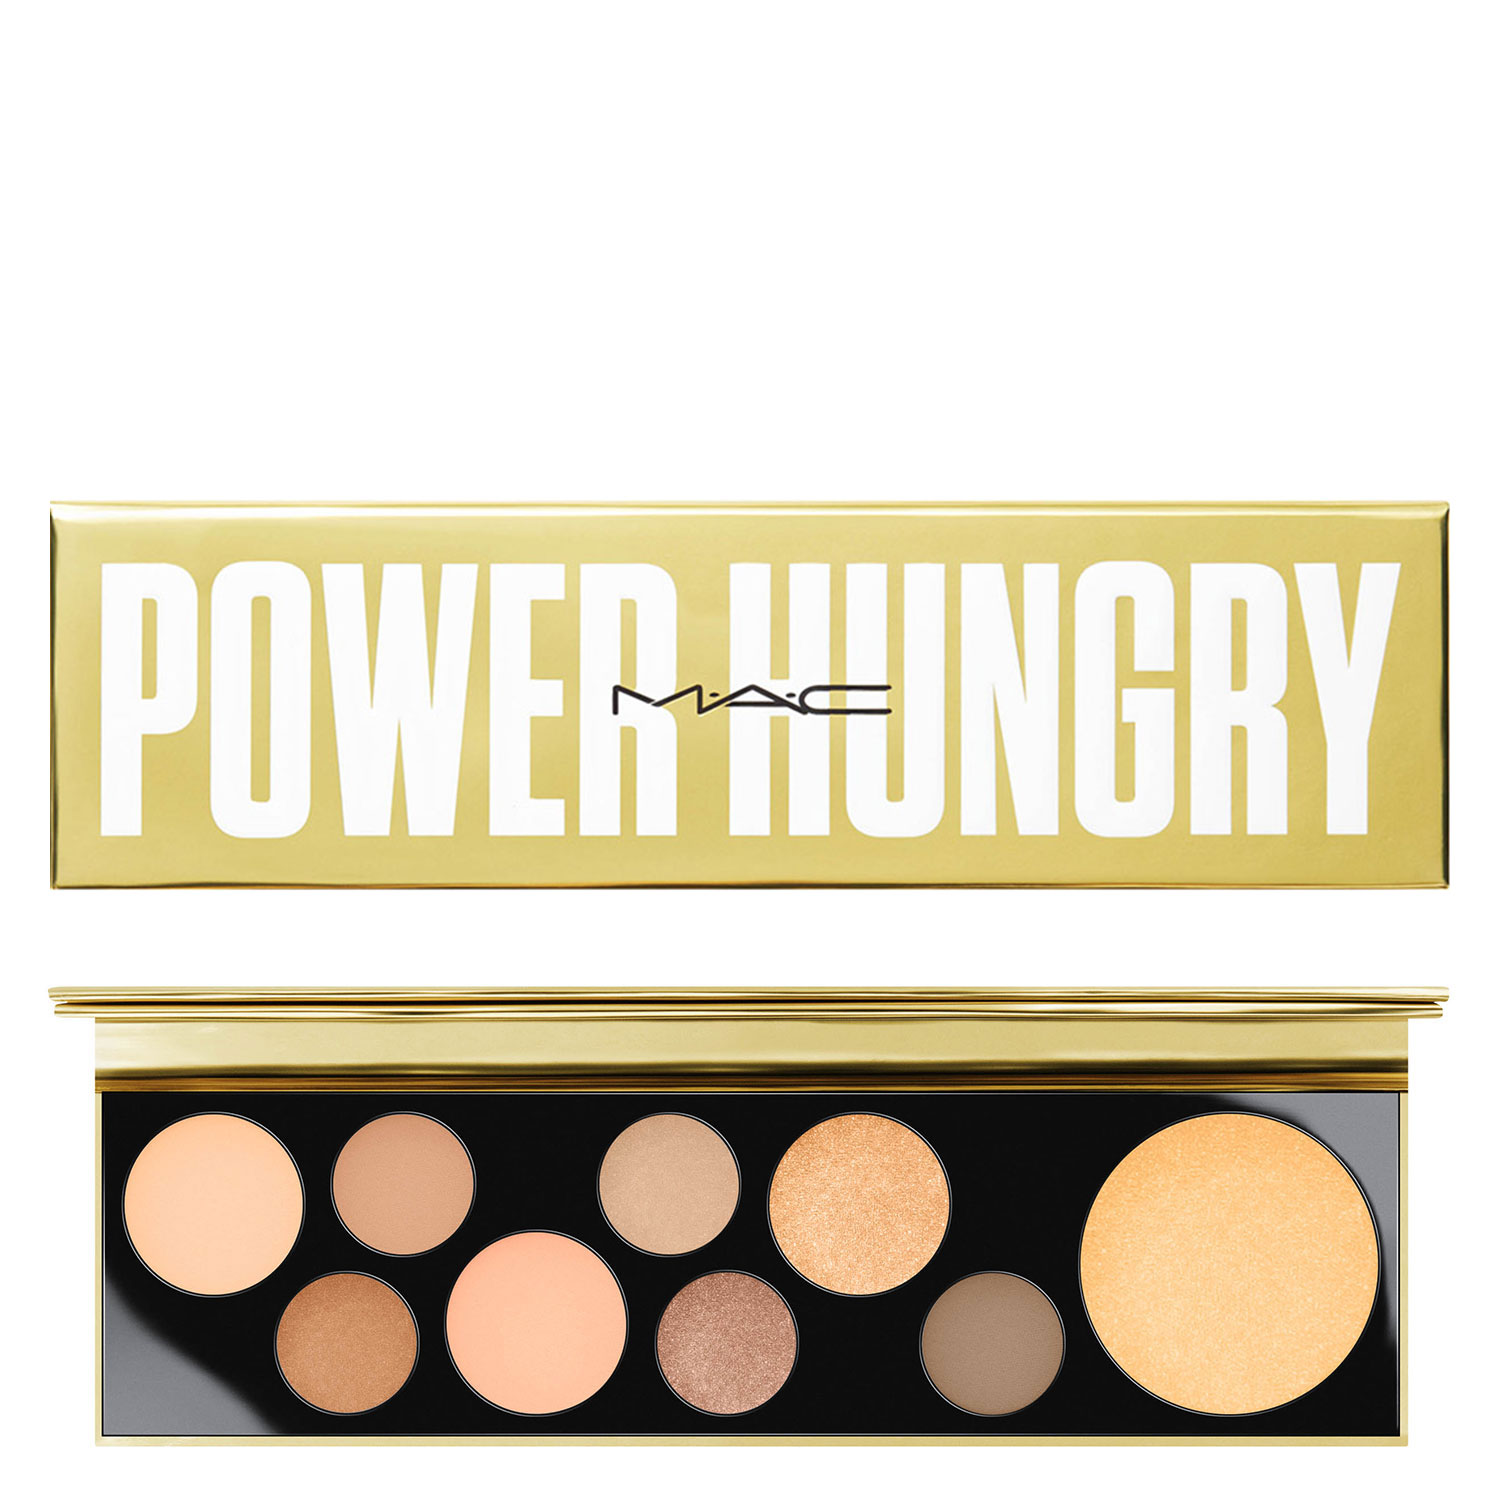 Girls Personality Palettes - Power Hungry